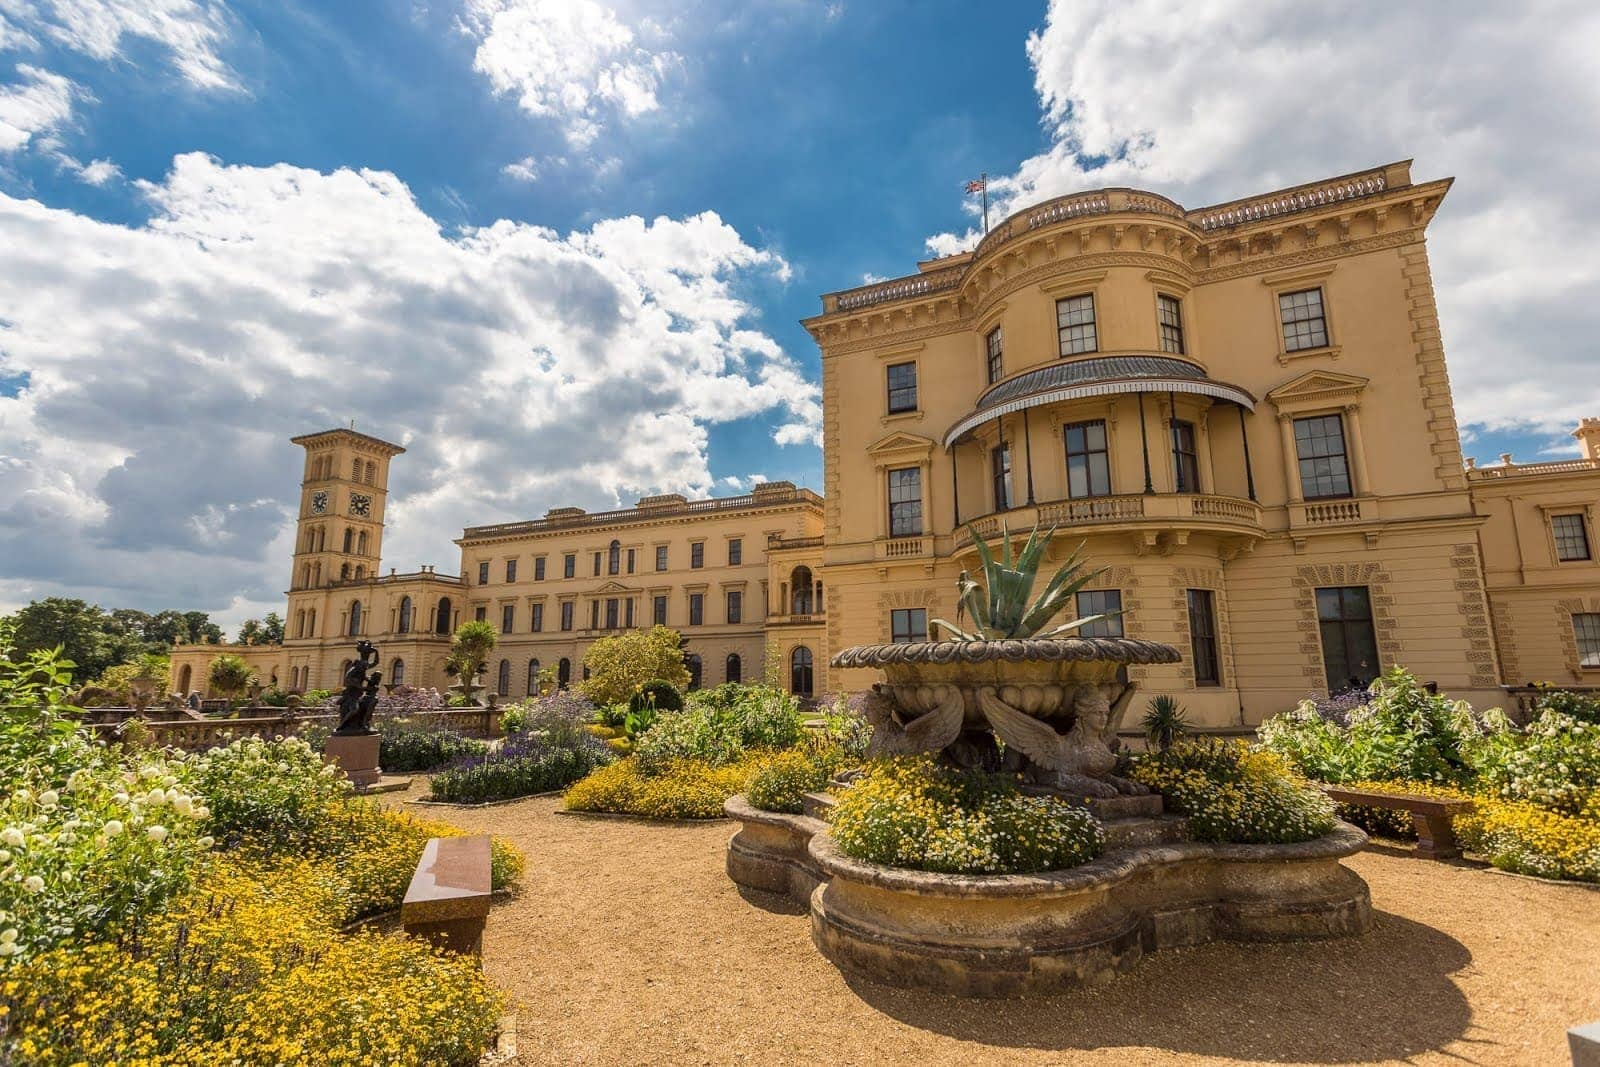 Osborne House by Laurence Norah-2